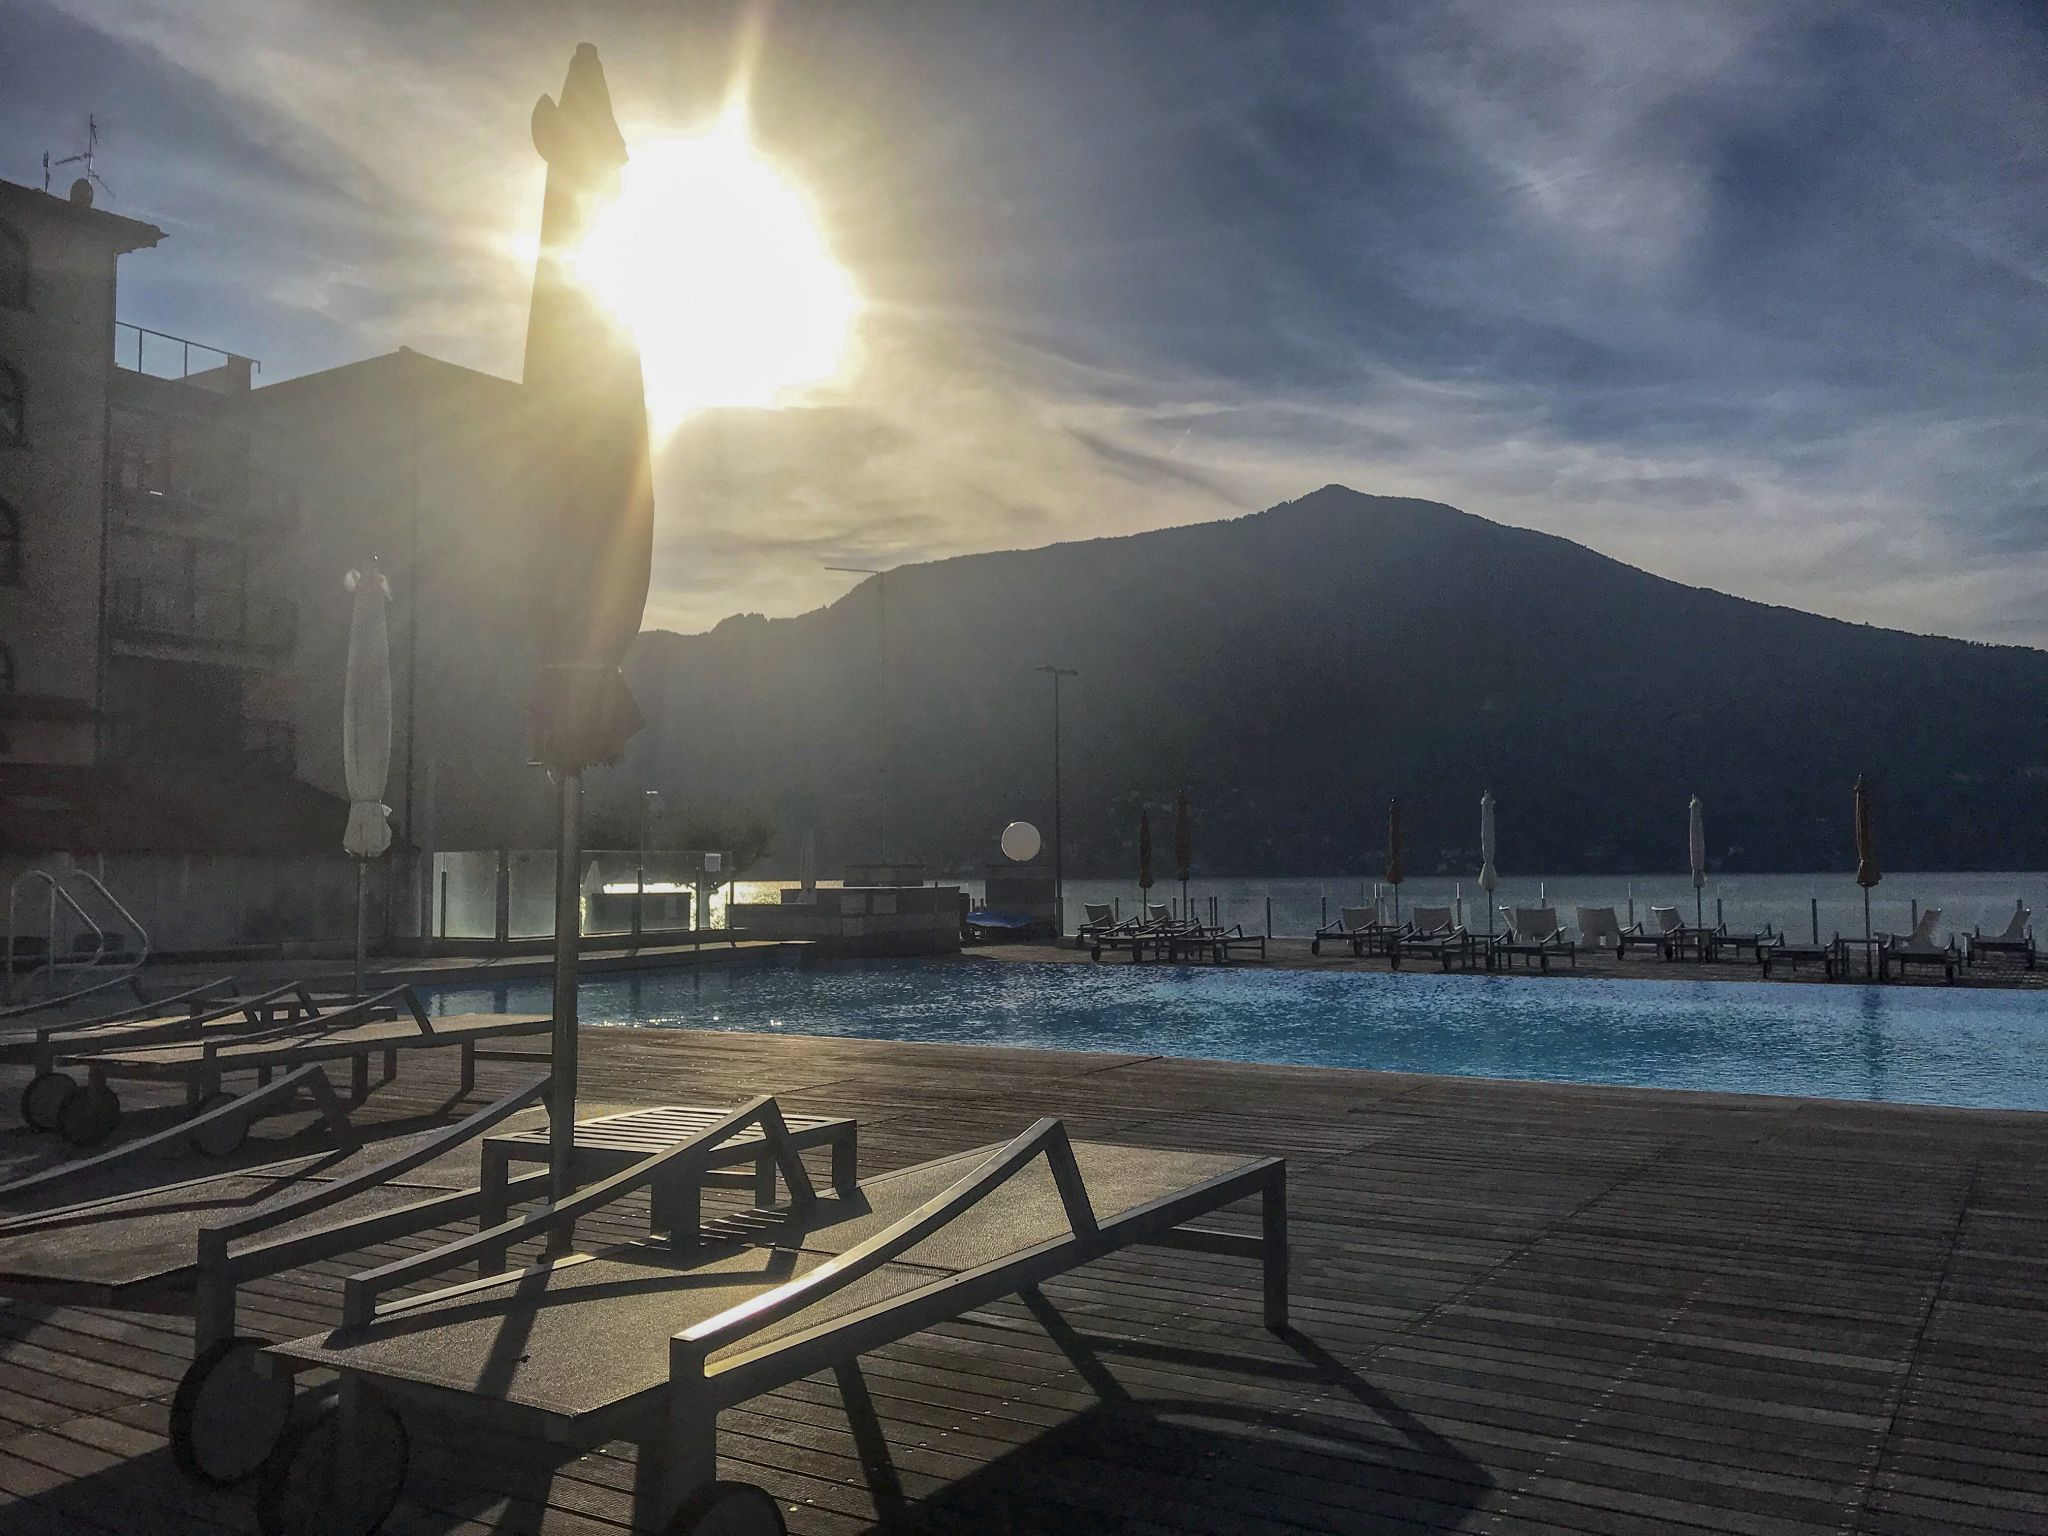 sunset over the pool on holiday at Golfo Gabella Resort Lake Maggiore